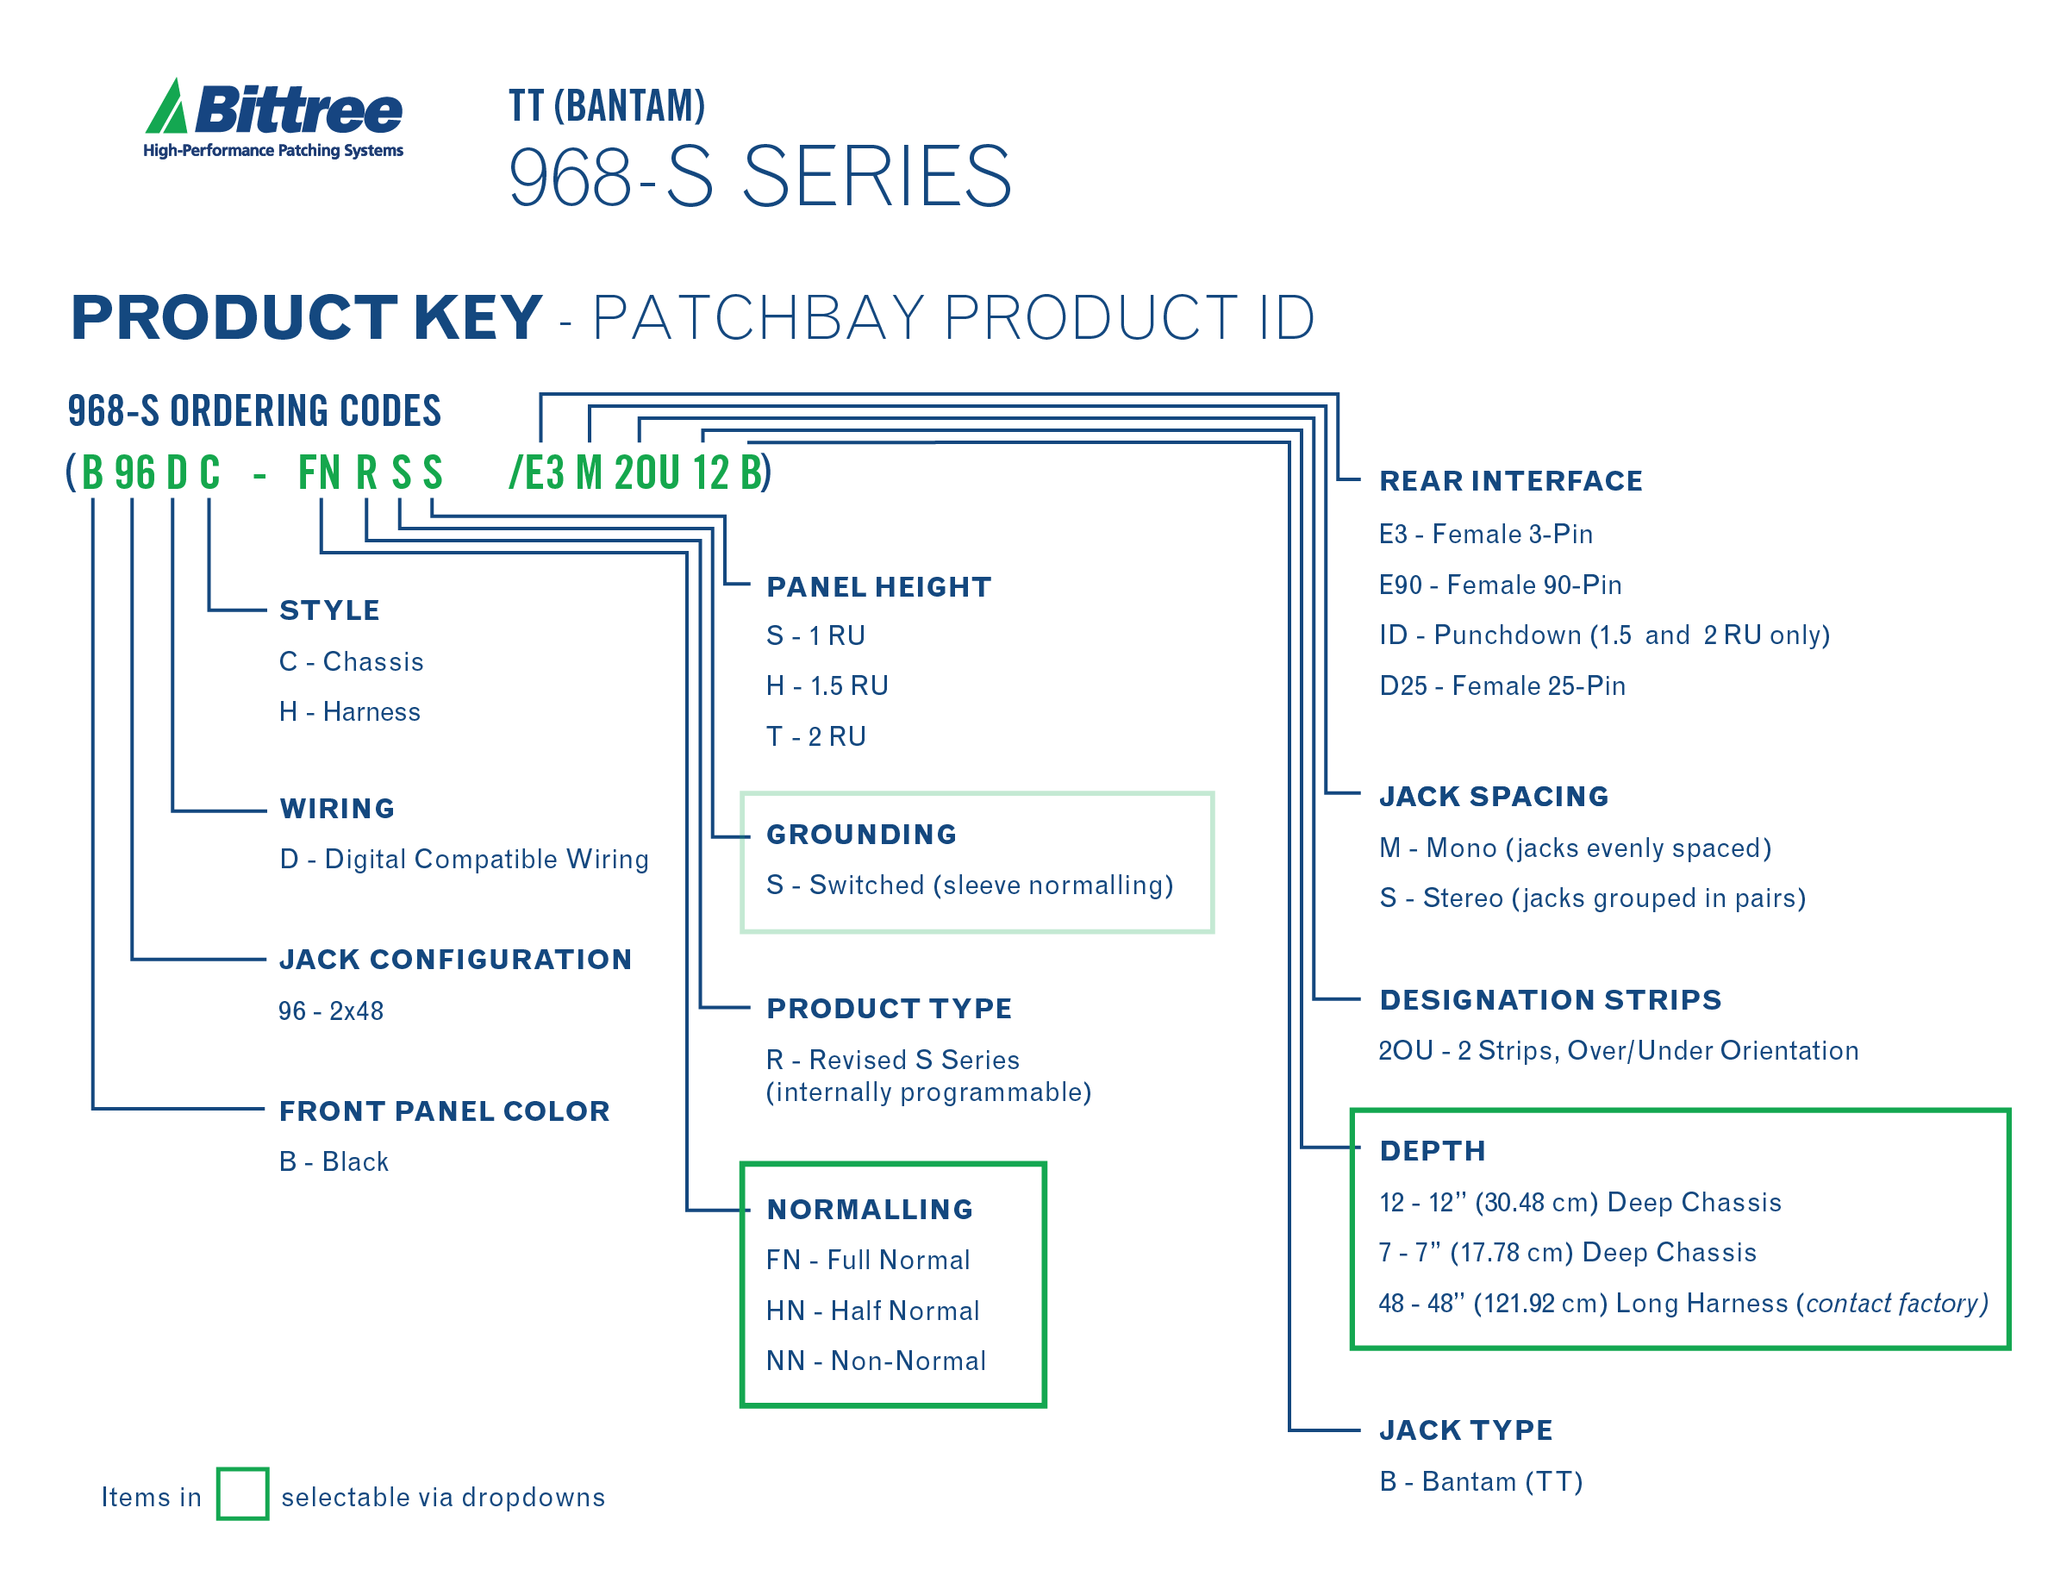 Bittree Product Key Diagrams 968 S Series v4_16f5601d 6901 4ae4 ac14 583eb1a55f1a?v=1502749750 968s 2x48 1 5ru tt patchbay, internally selectable trs audio patchbay wiring diagram at gsmx.co